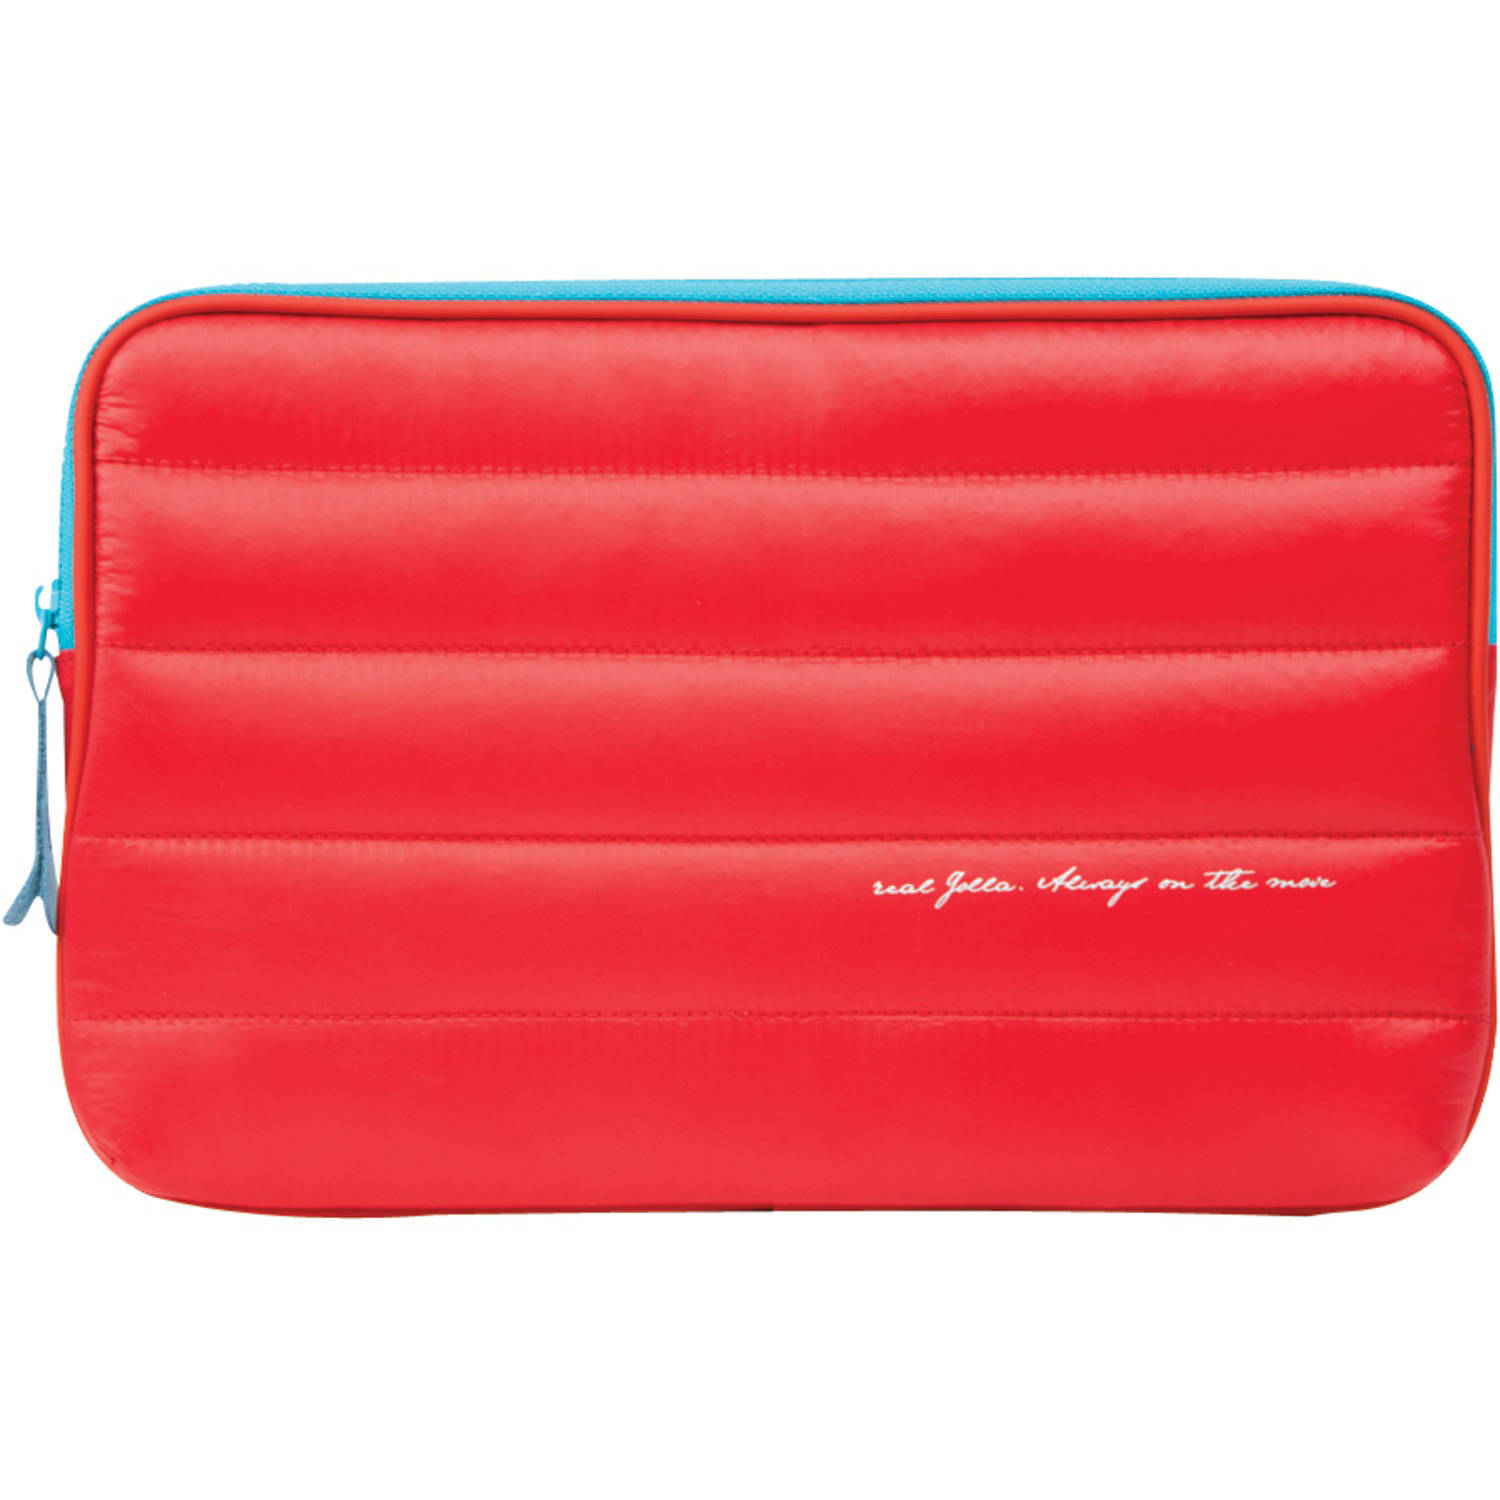 "Golla GC776 10.6"" Tablet Sleeve, Nevaeh Red"